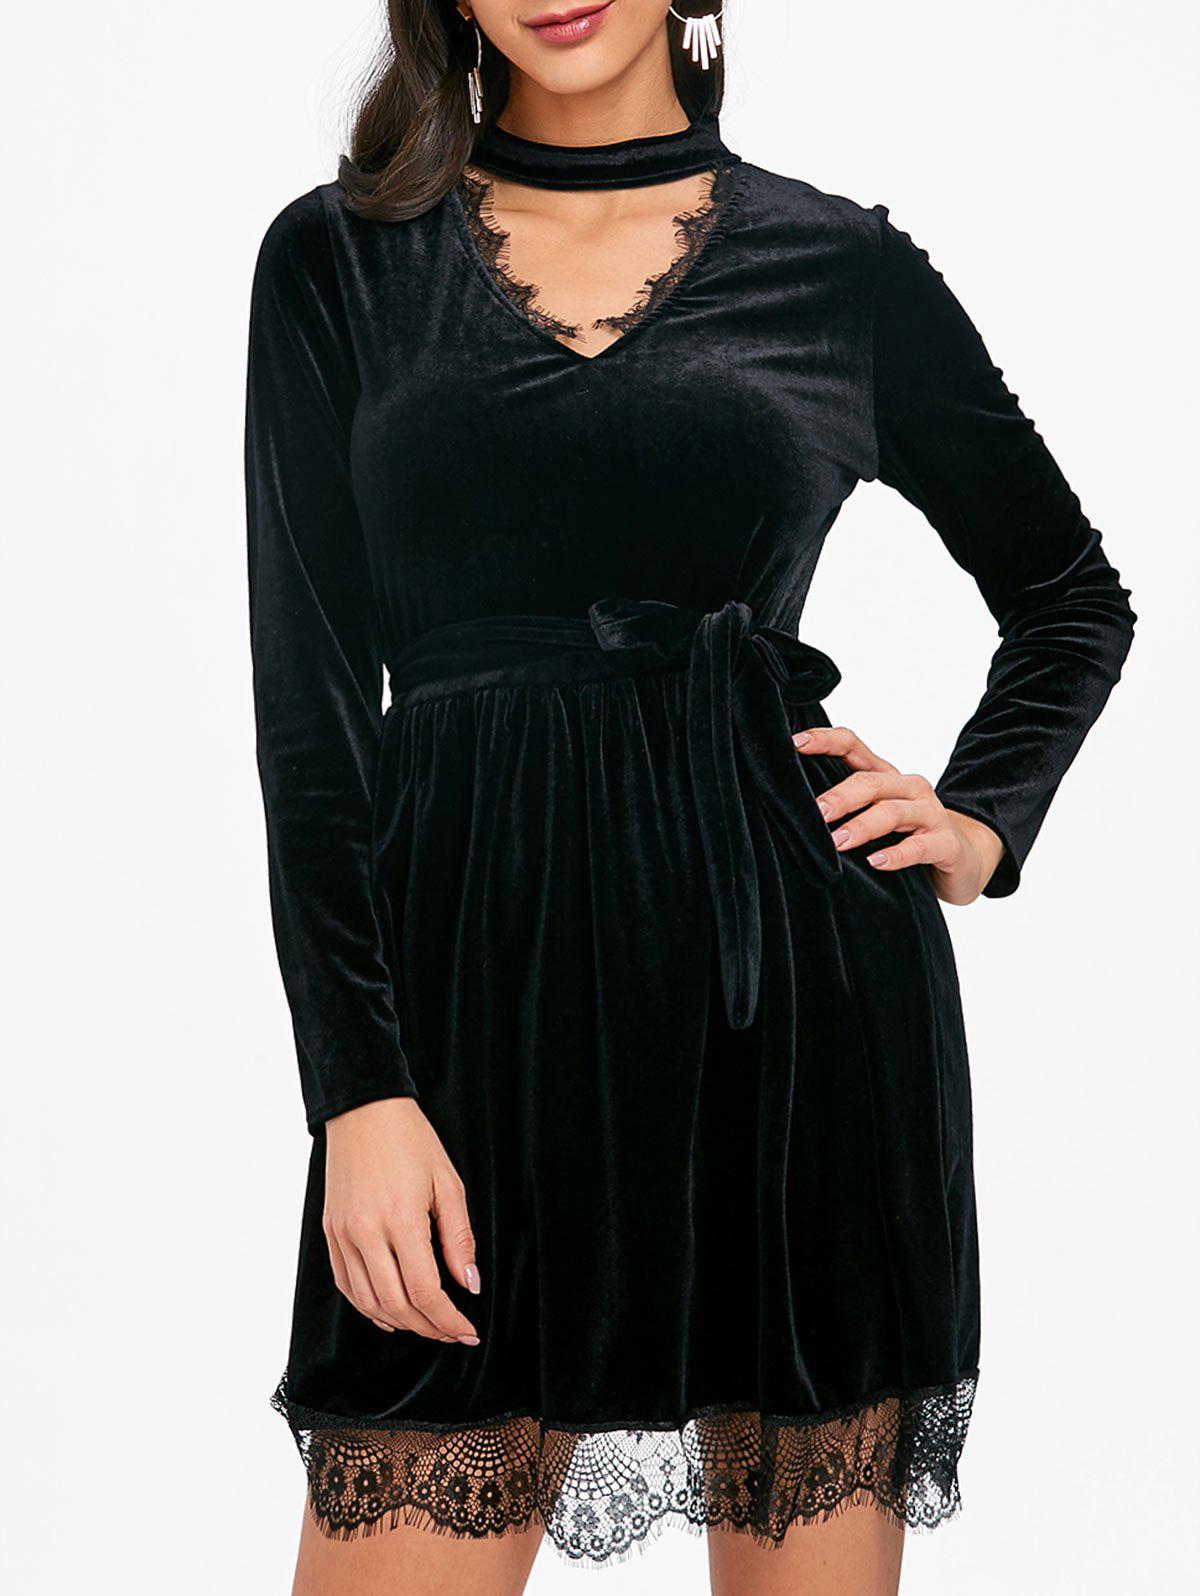 Lace Ttrimmed Belted Velvet Dress - BLACK M